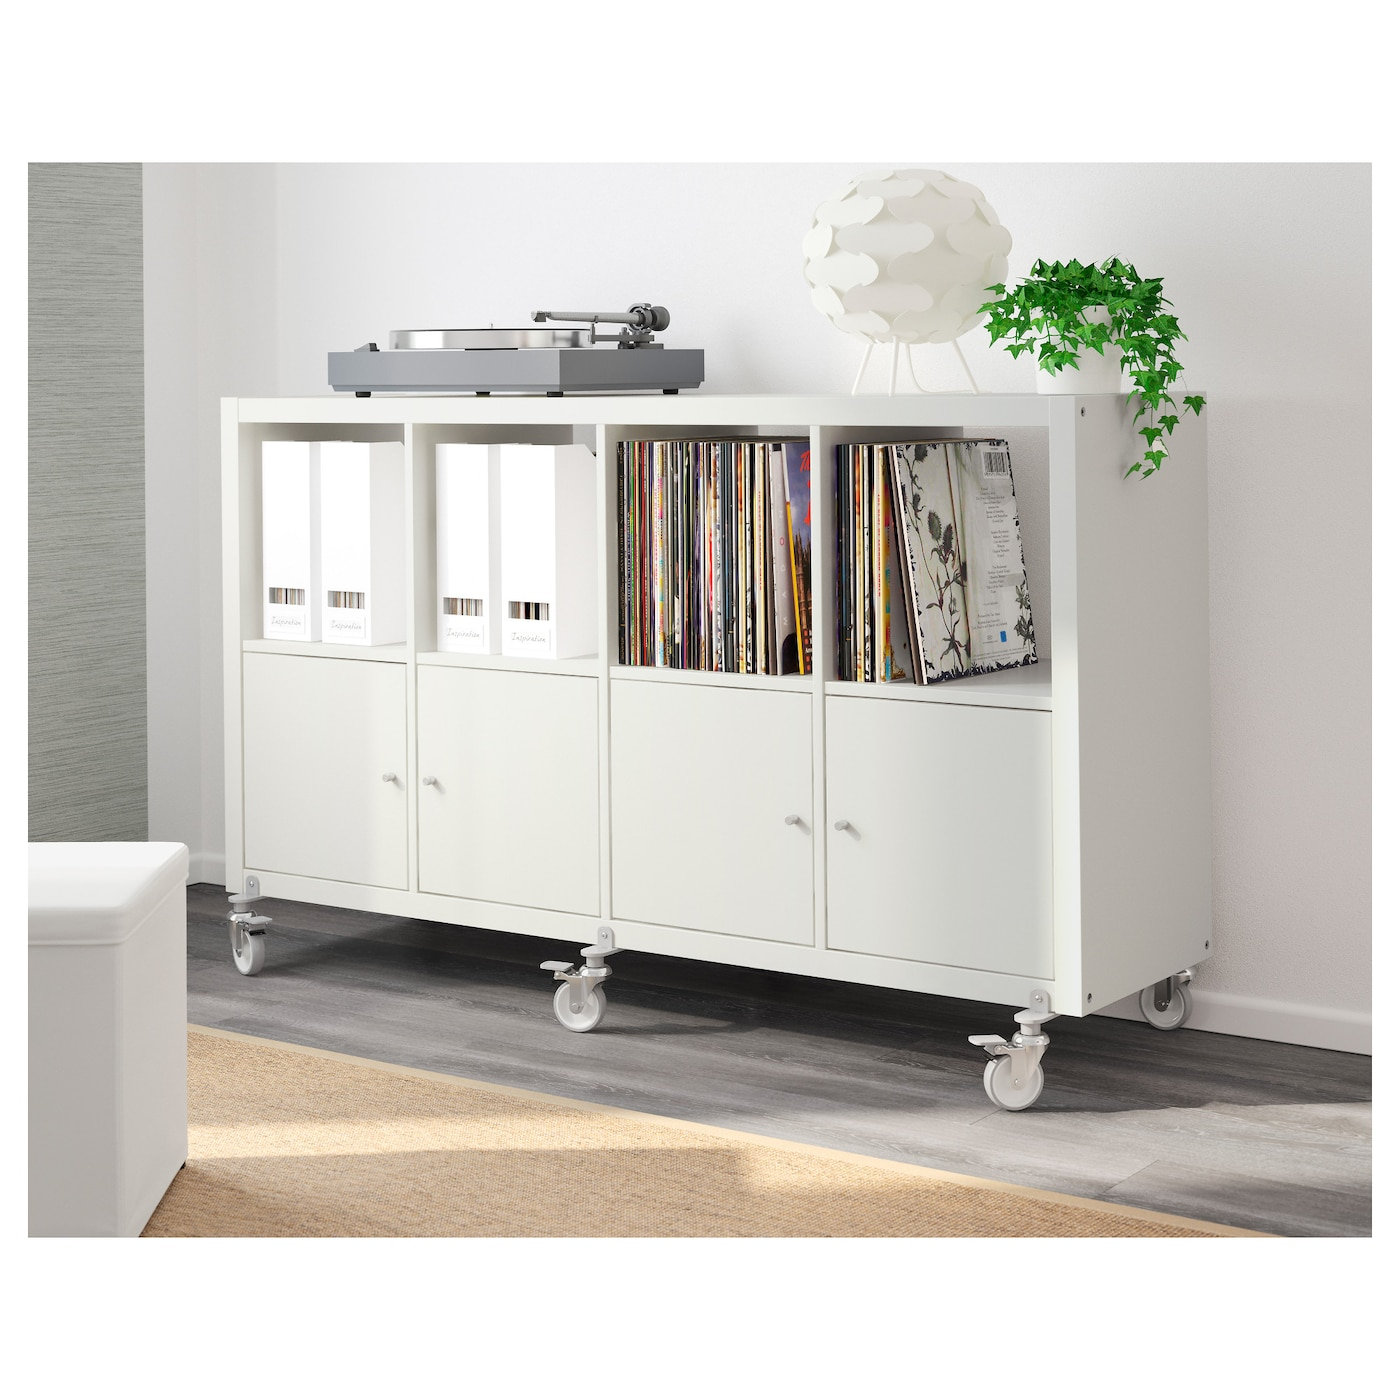 kallax shelving unit 4 doors castors white 147 x 89 cm ikea. Black Bedroom Furniture Sets. Home Design Ideas